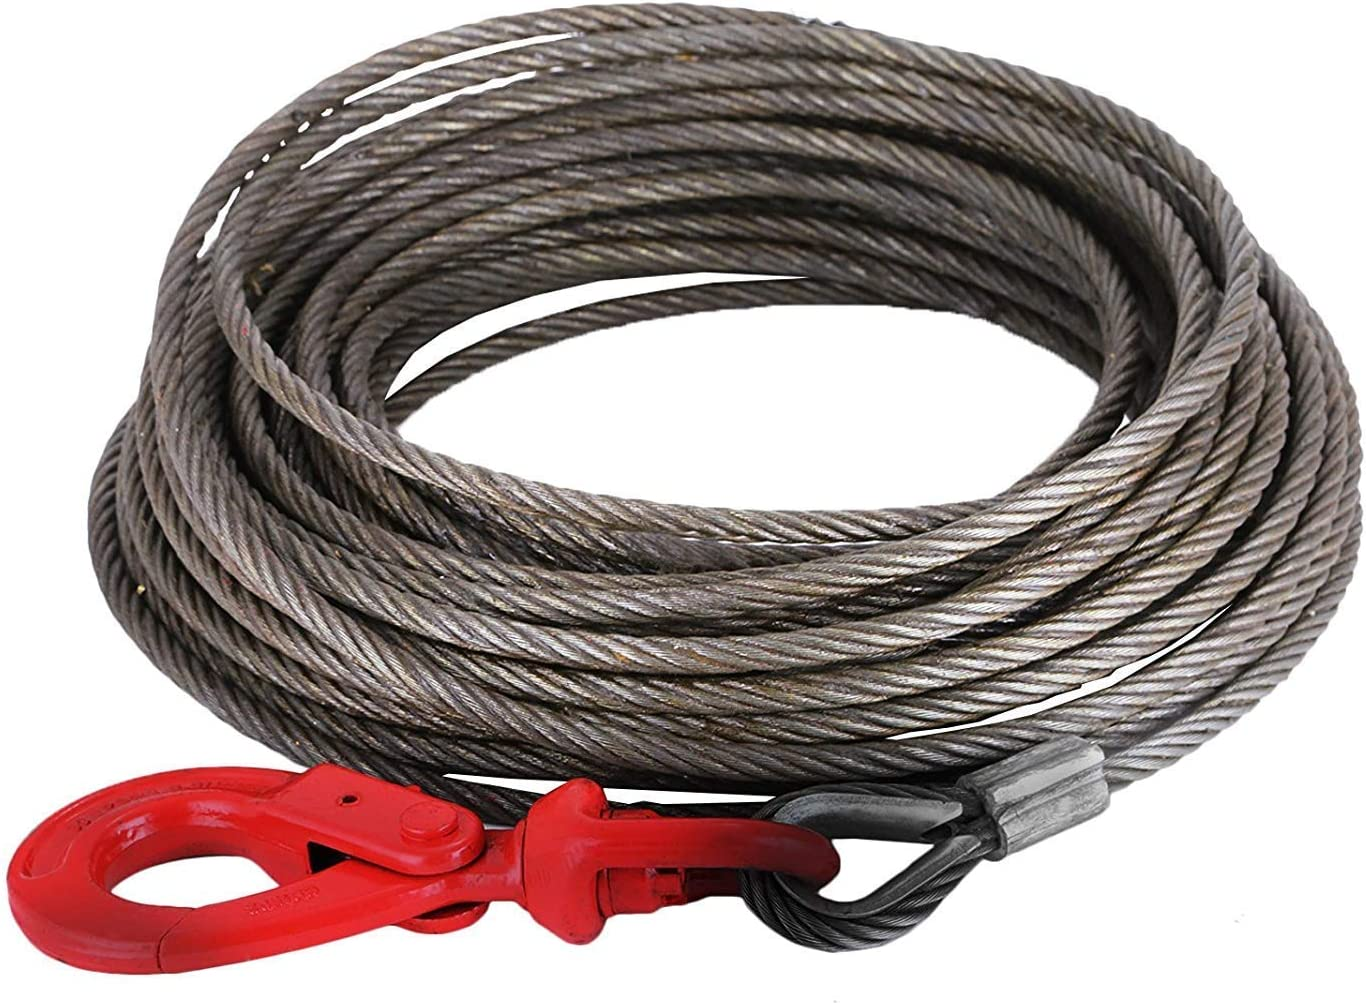 BA Products 4-38PS35S Winch Cable 3//8 x 35 Fiber Core with 3 Ton Swivel Hook